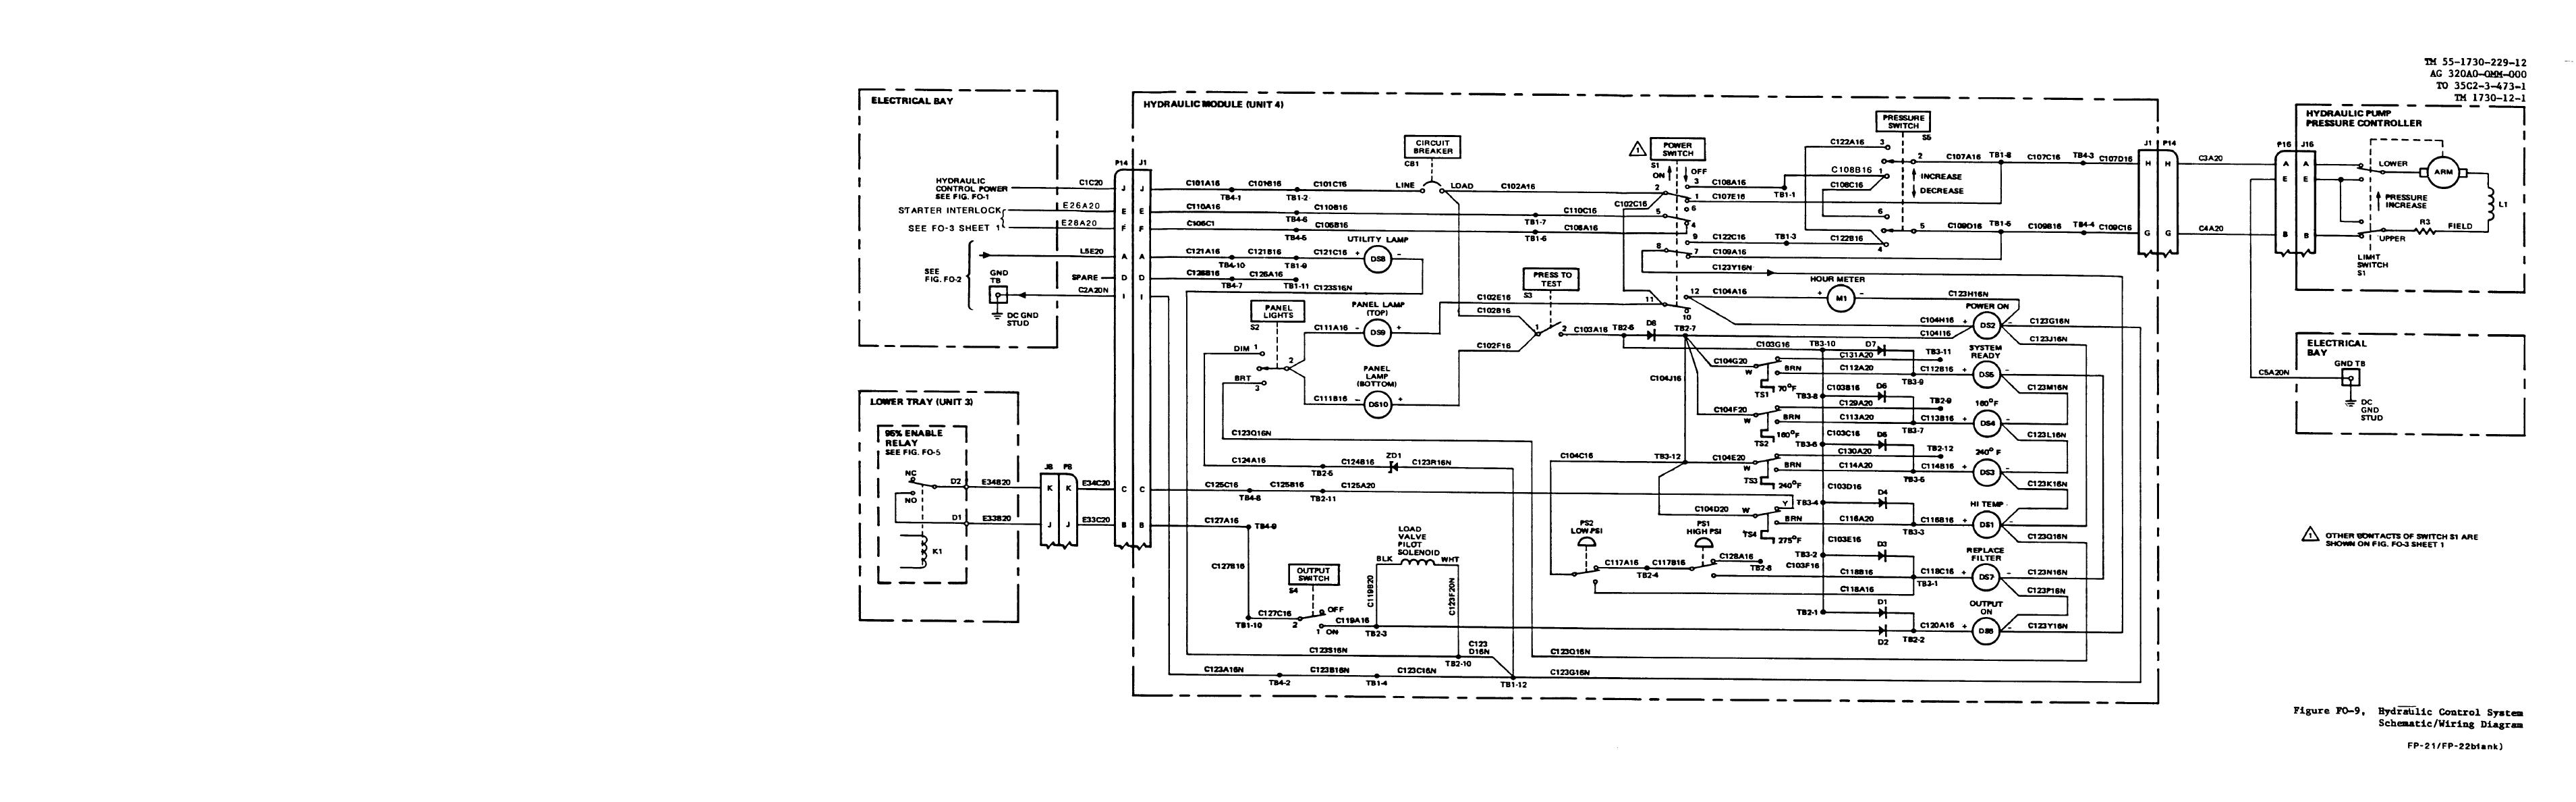 Aviation Schematics Wiring 26 Diagram Images Xcom Intercom Circuit Tm 55 1730 229 120552im Figure Fo 9 Hydraulic Control System Schematic Drawing